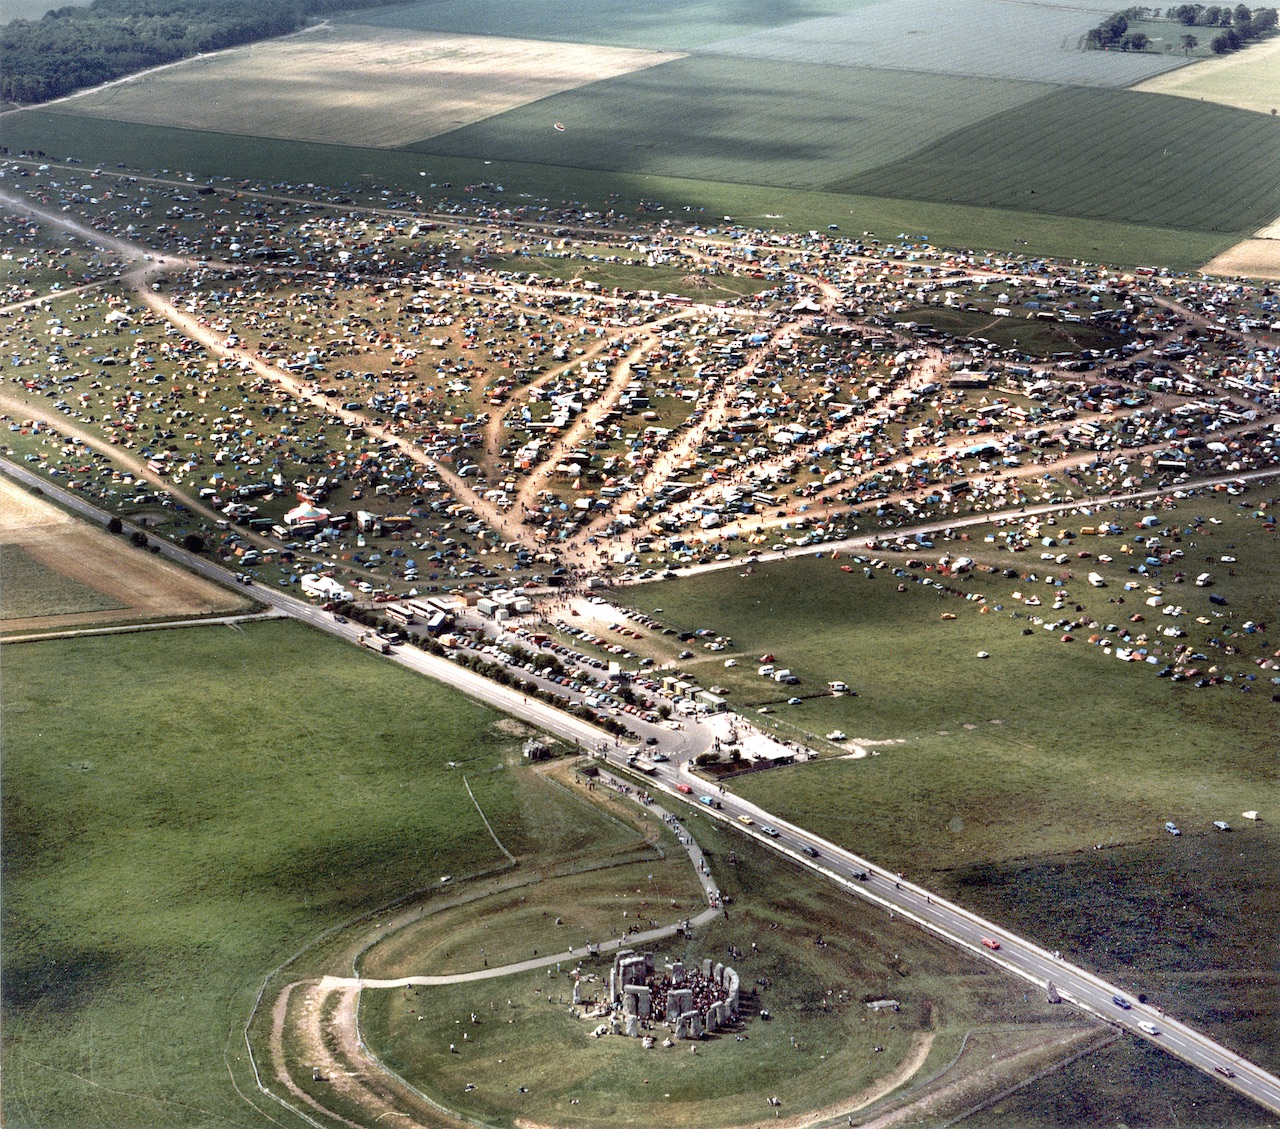 An aerial view of the Stonehenge Free Festival in 1984, liberated from the police during the subsequent trial.